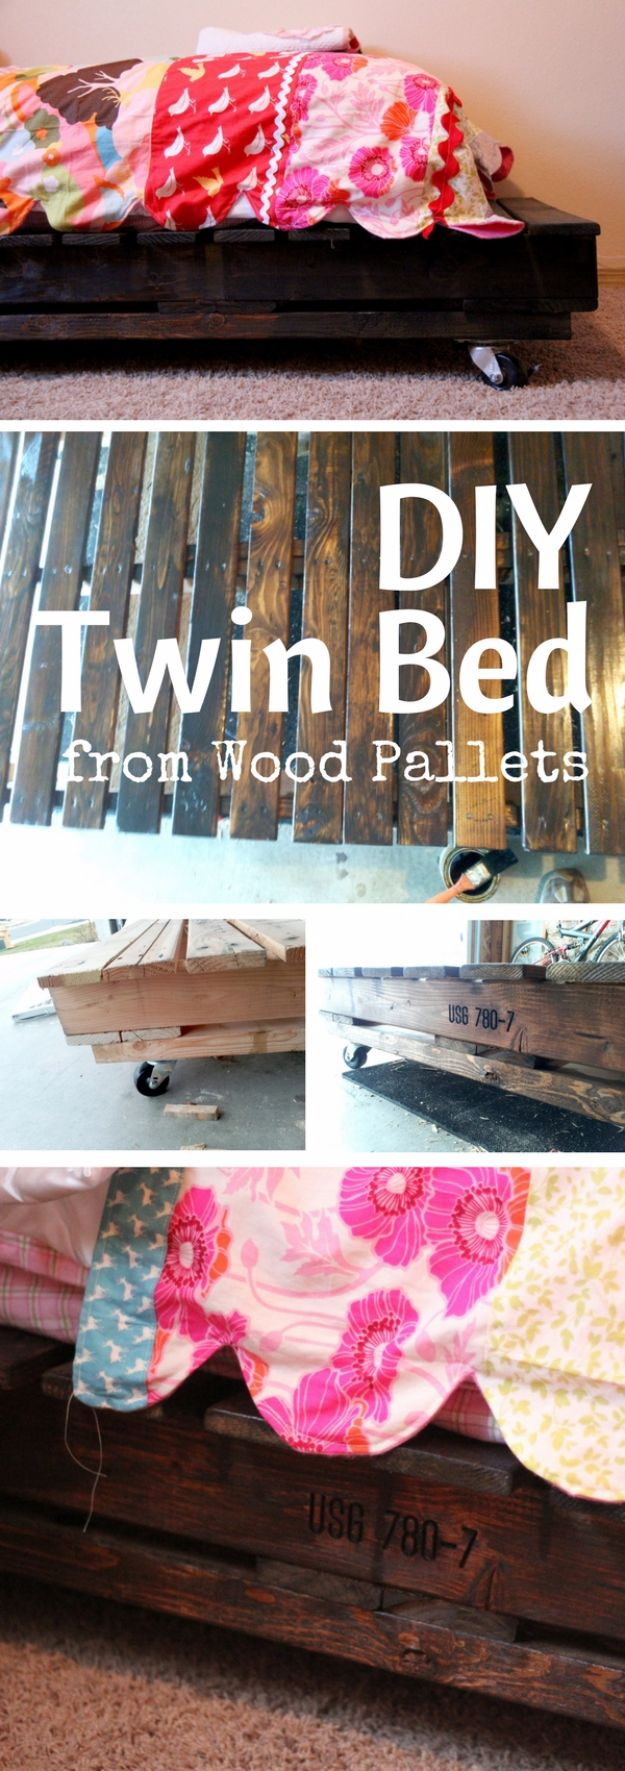 DIY Platform Beds - DIY Twin Bed from Wood Pallets - Easy Do It Yourself Bed Projects - Step by Step Tutorials for Bedroom Furniture - Learn How To Make Twin, Full, King and Queen Size Platforms - With Headboard, Storage, Drawers, Made from Pallets - Cheap Ideas You Can Make on a Budget http://diyjoy.com/diy-platform-beds